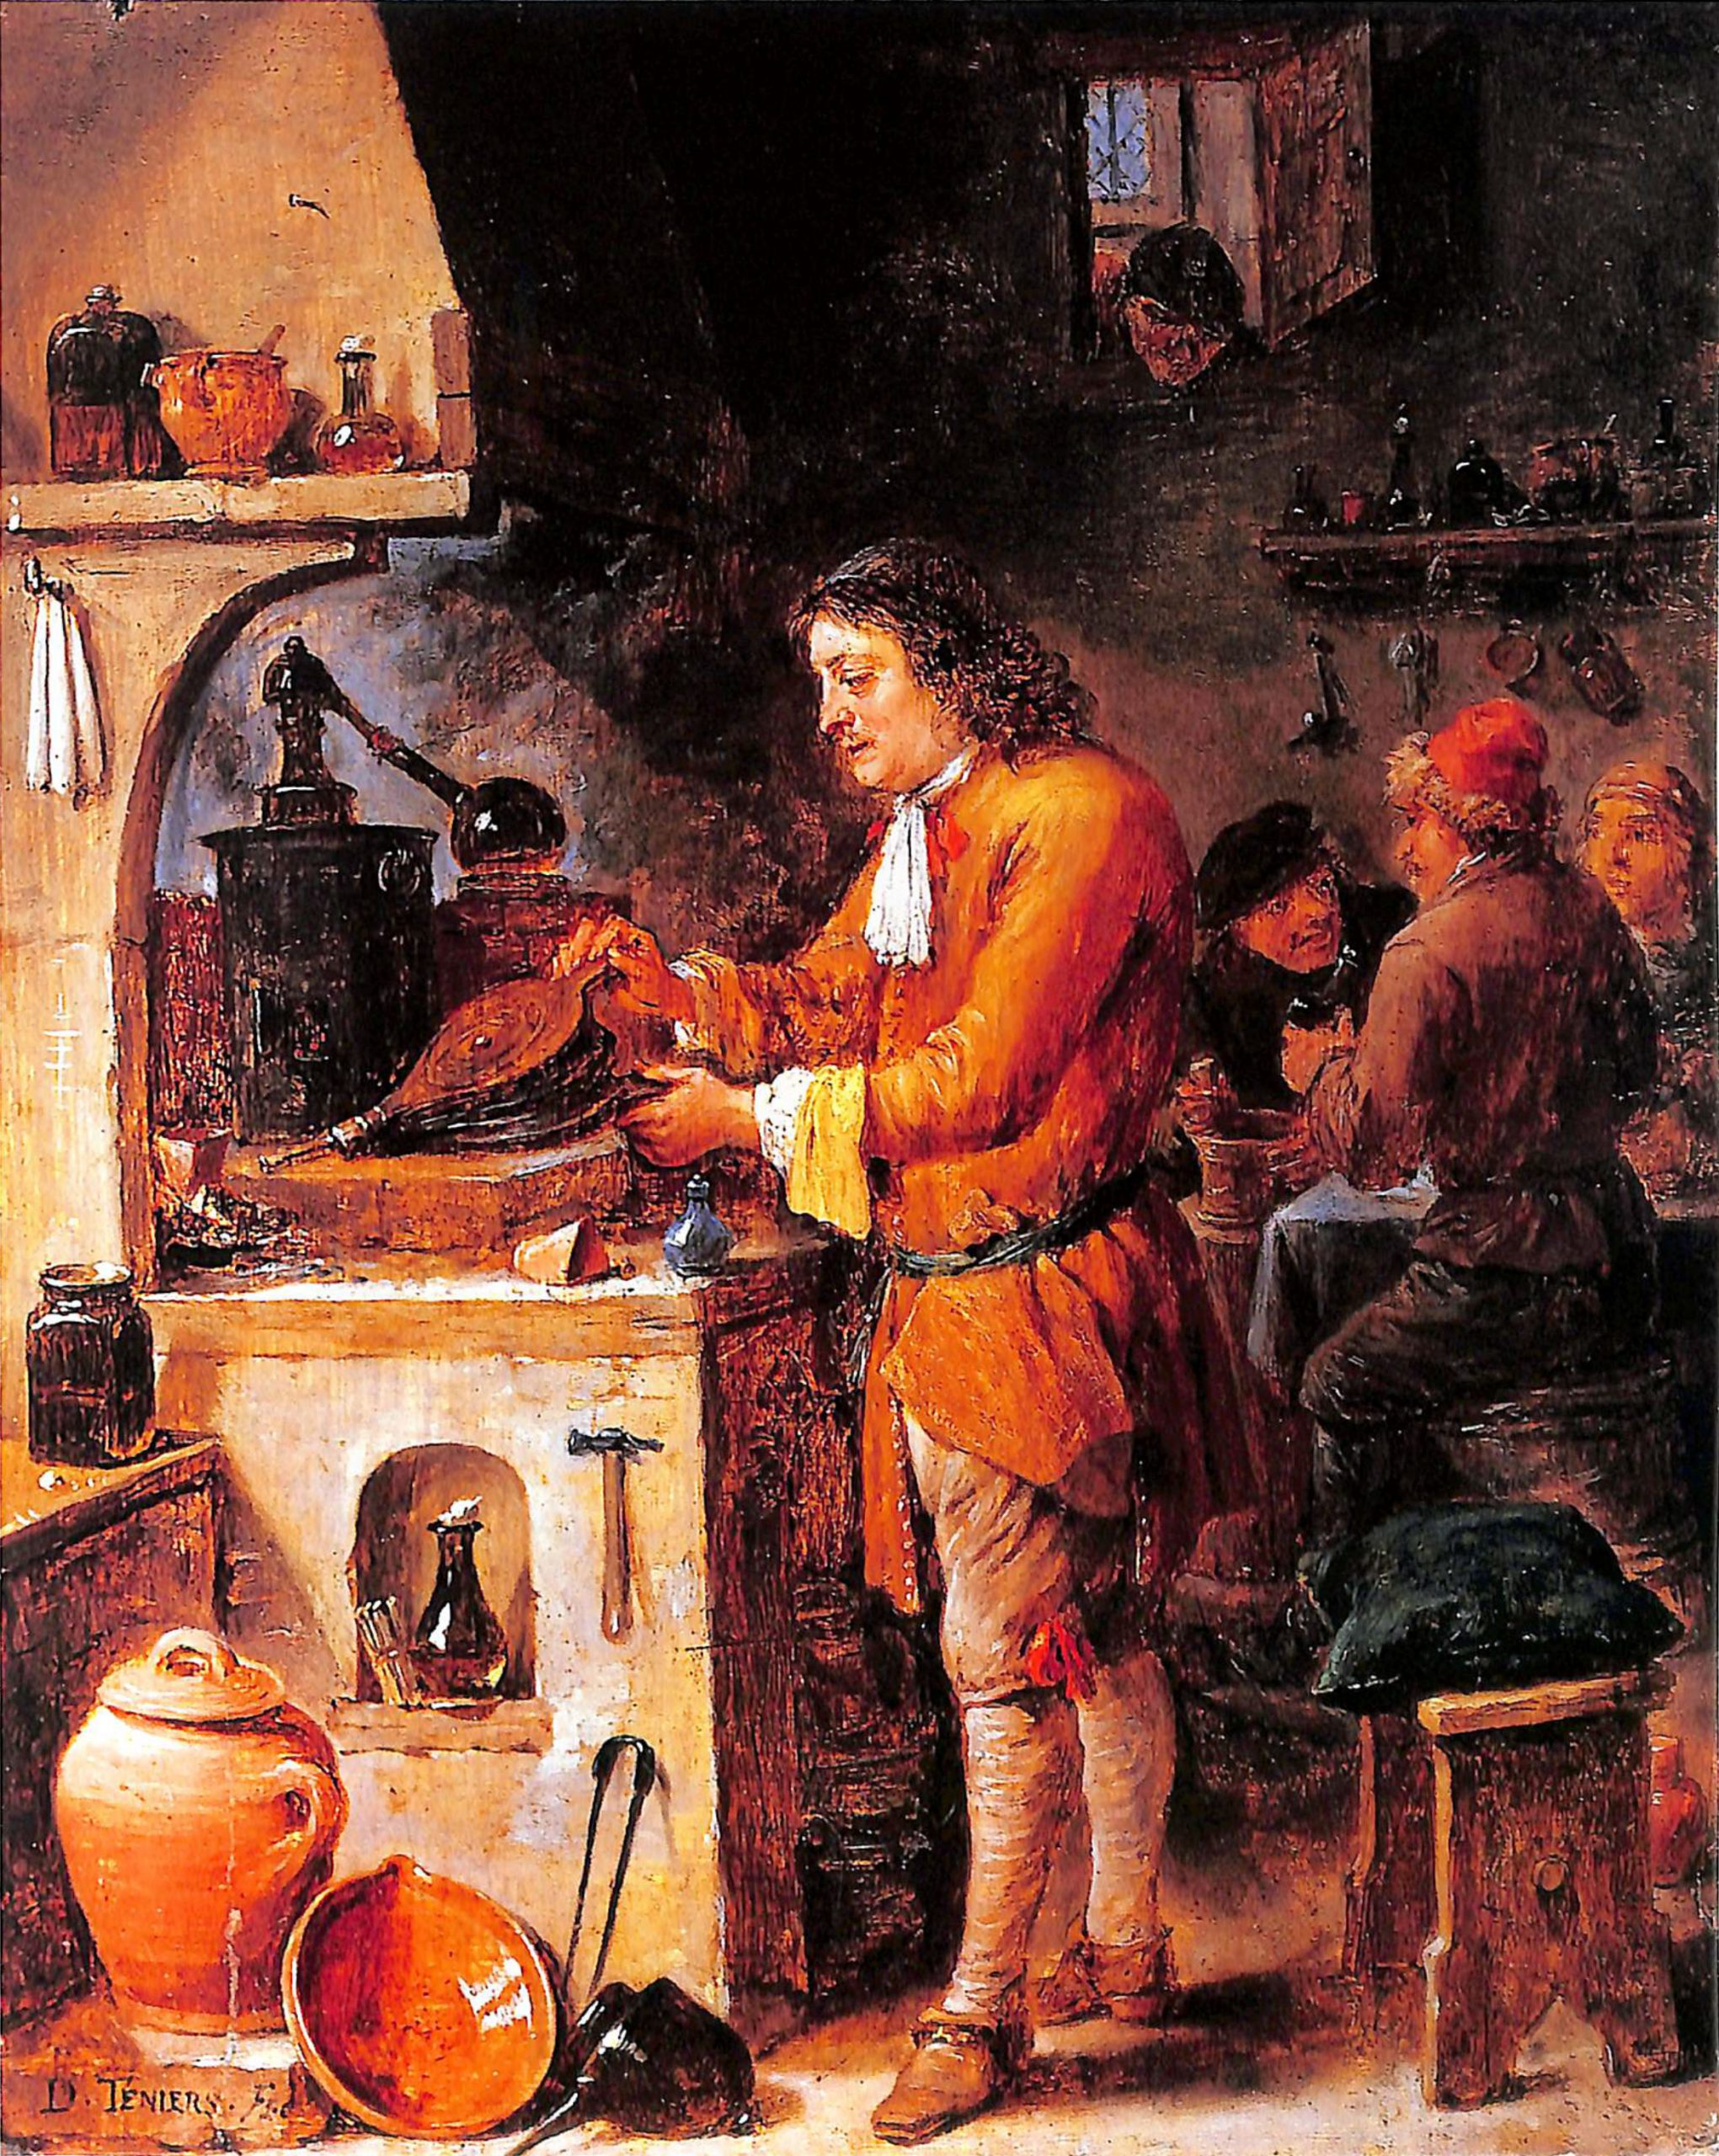 David-Teniers-Młodszy-Alchemik-w-labolatorium